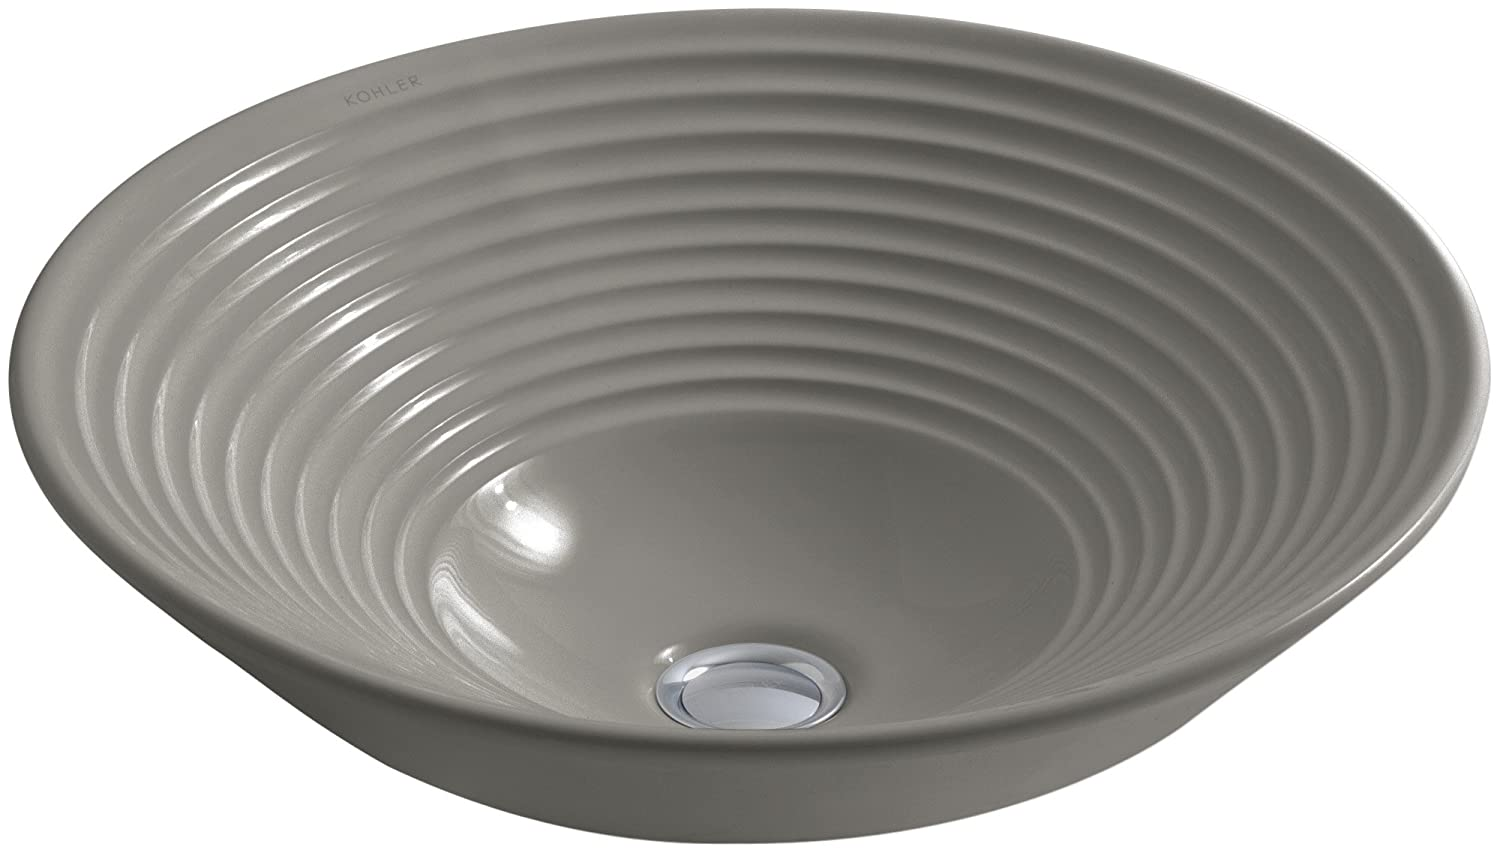 KOHLER K-2191-K4 Turnings Vessels Bathroom Sink, Cashmere